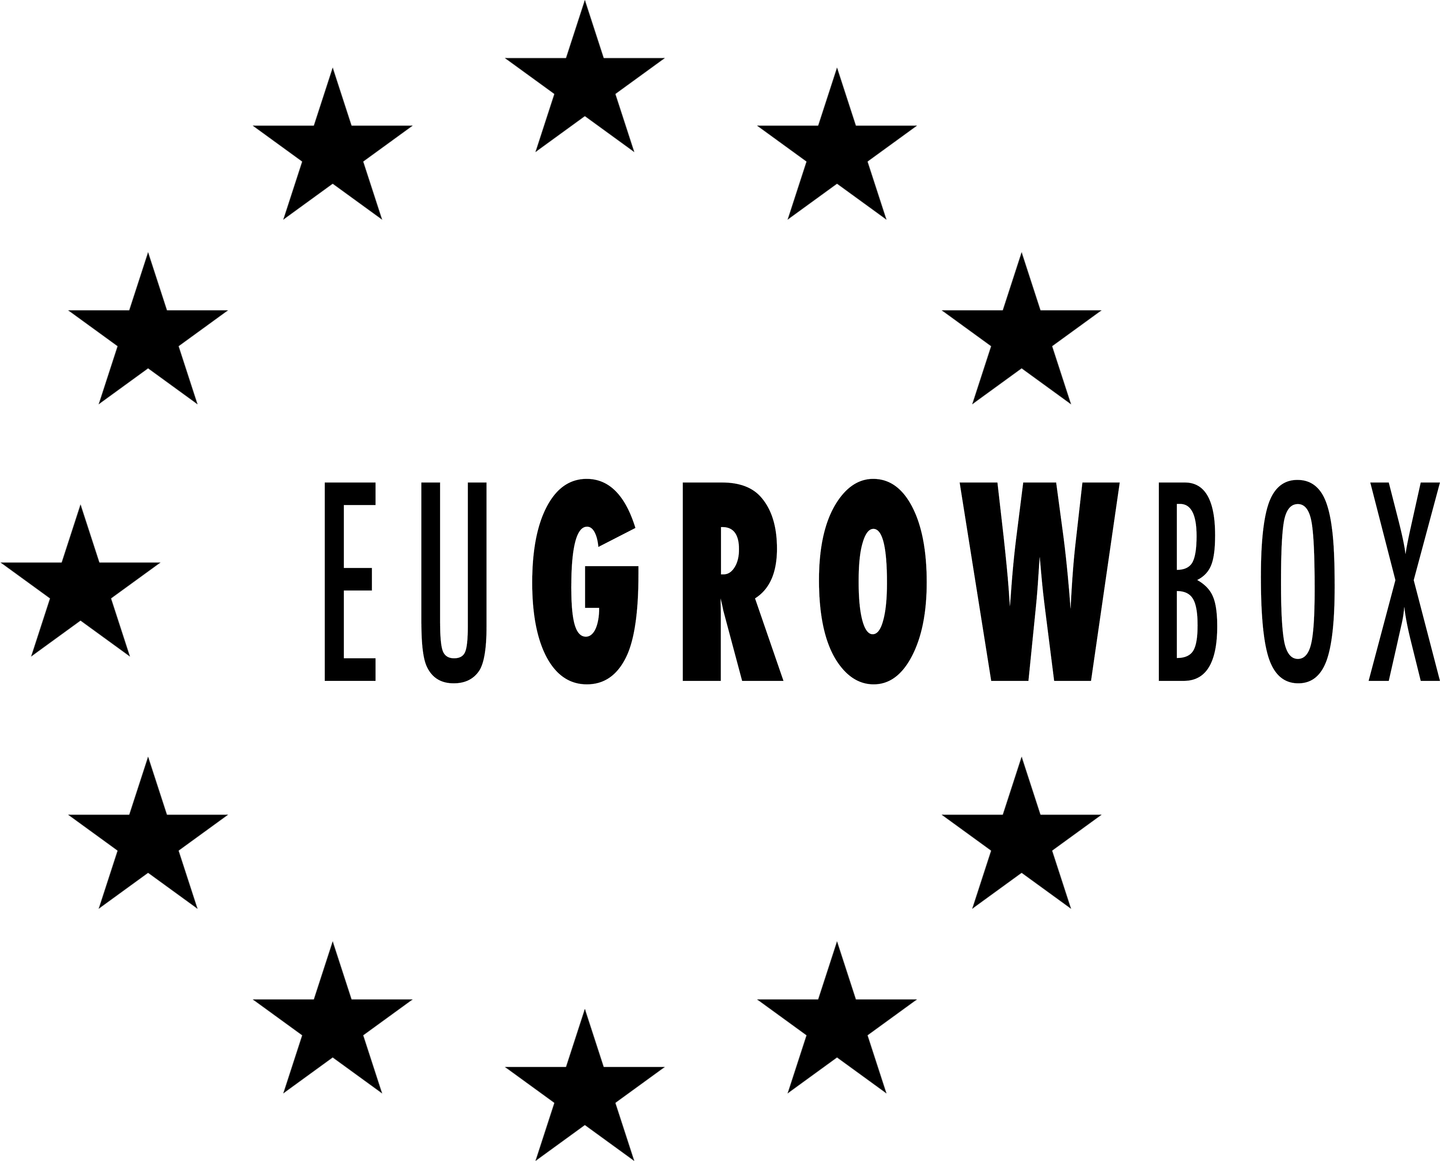 EU GROW BOX